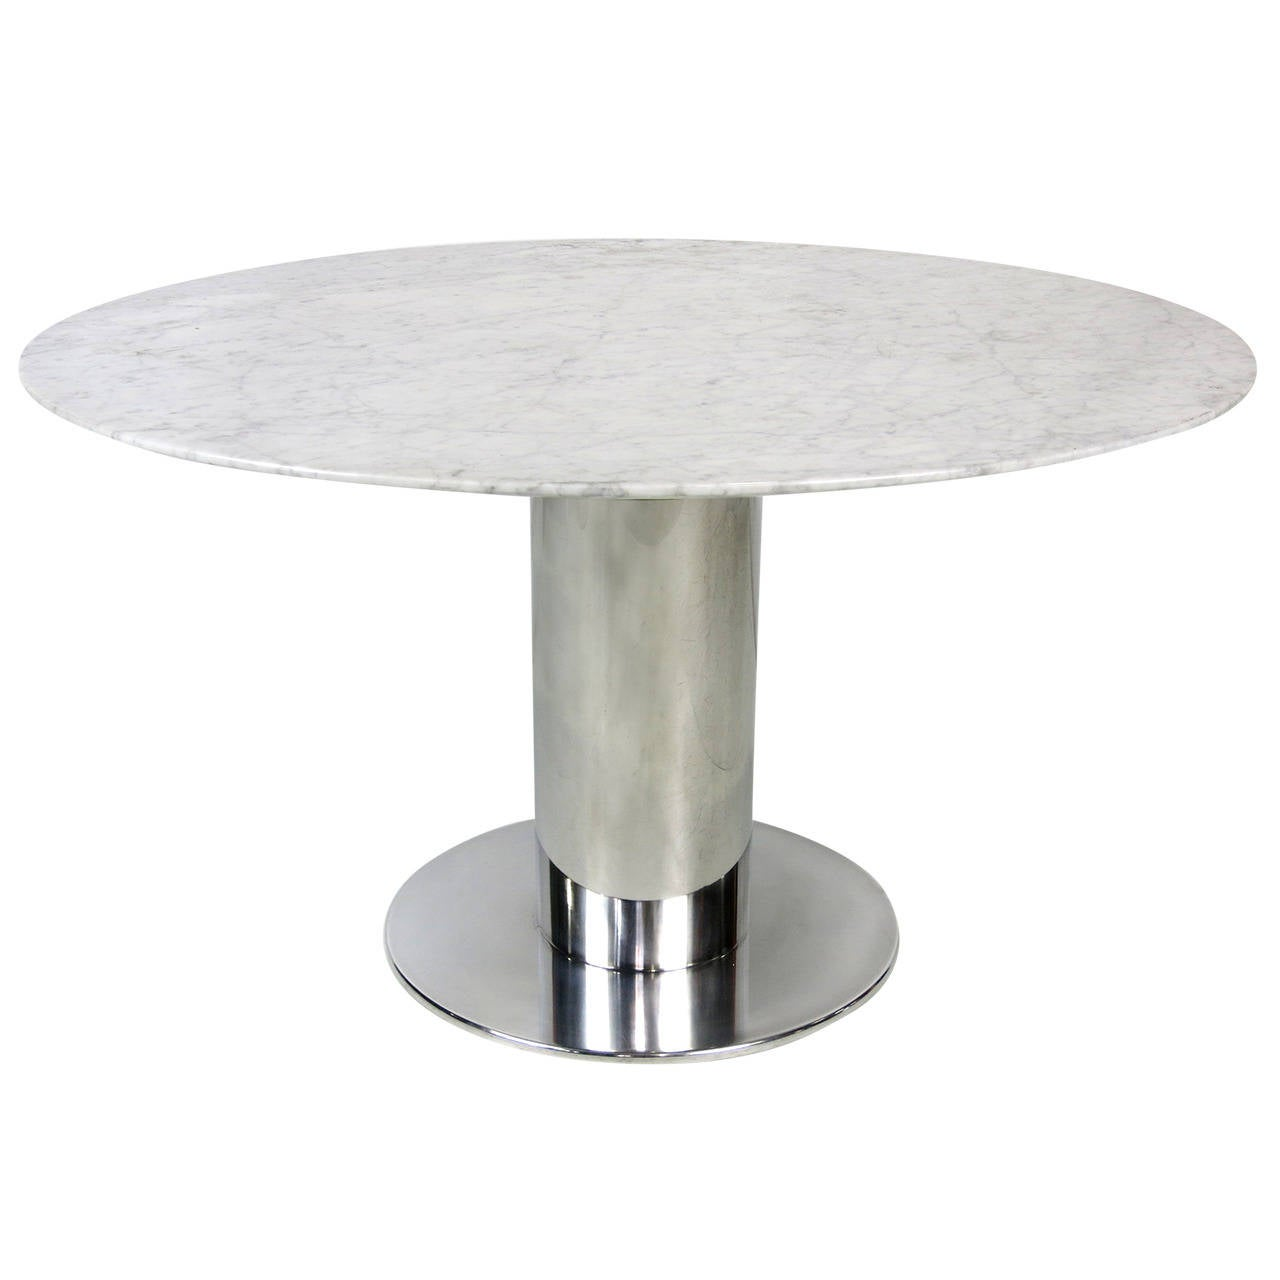 Polished Stainless Steel Dining Table Base For Sale At 1stdibs